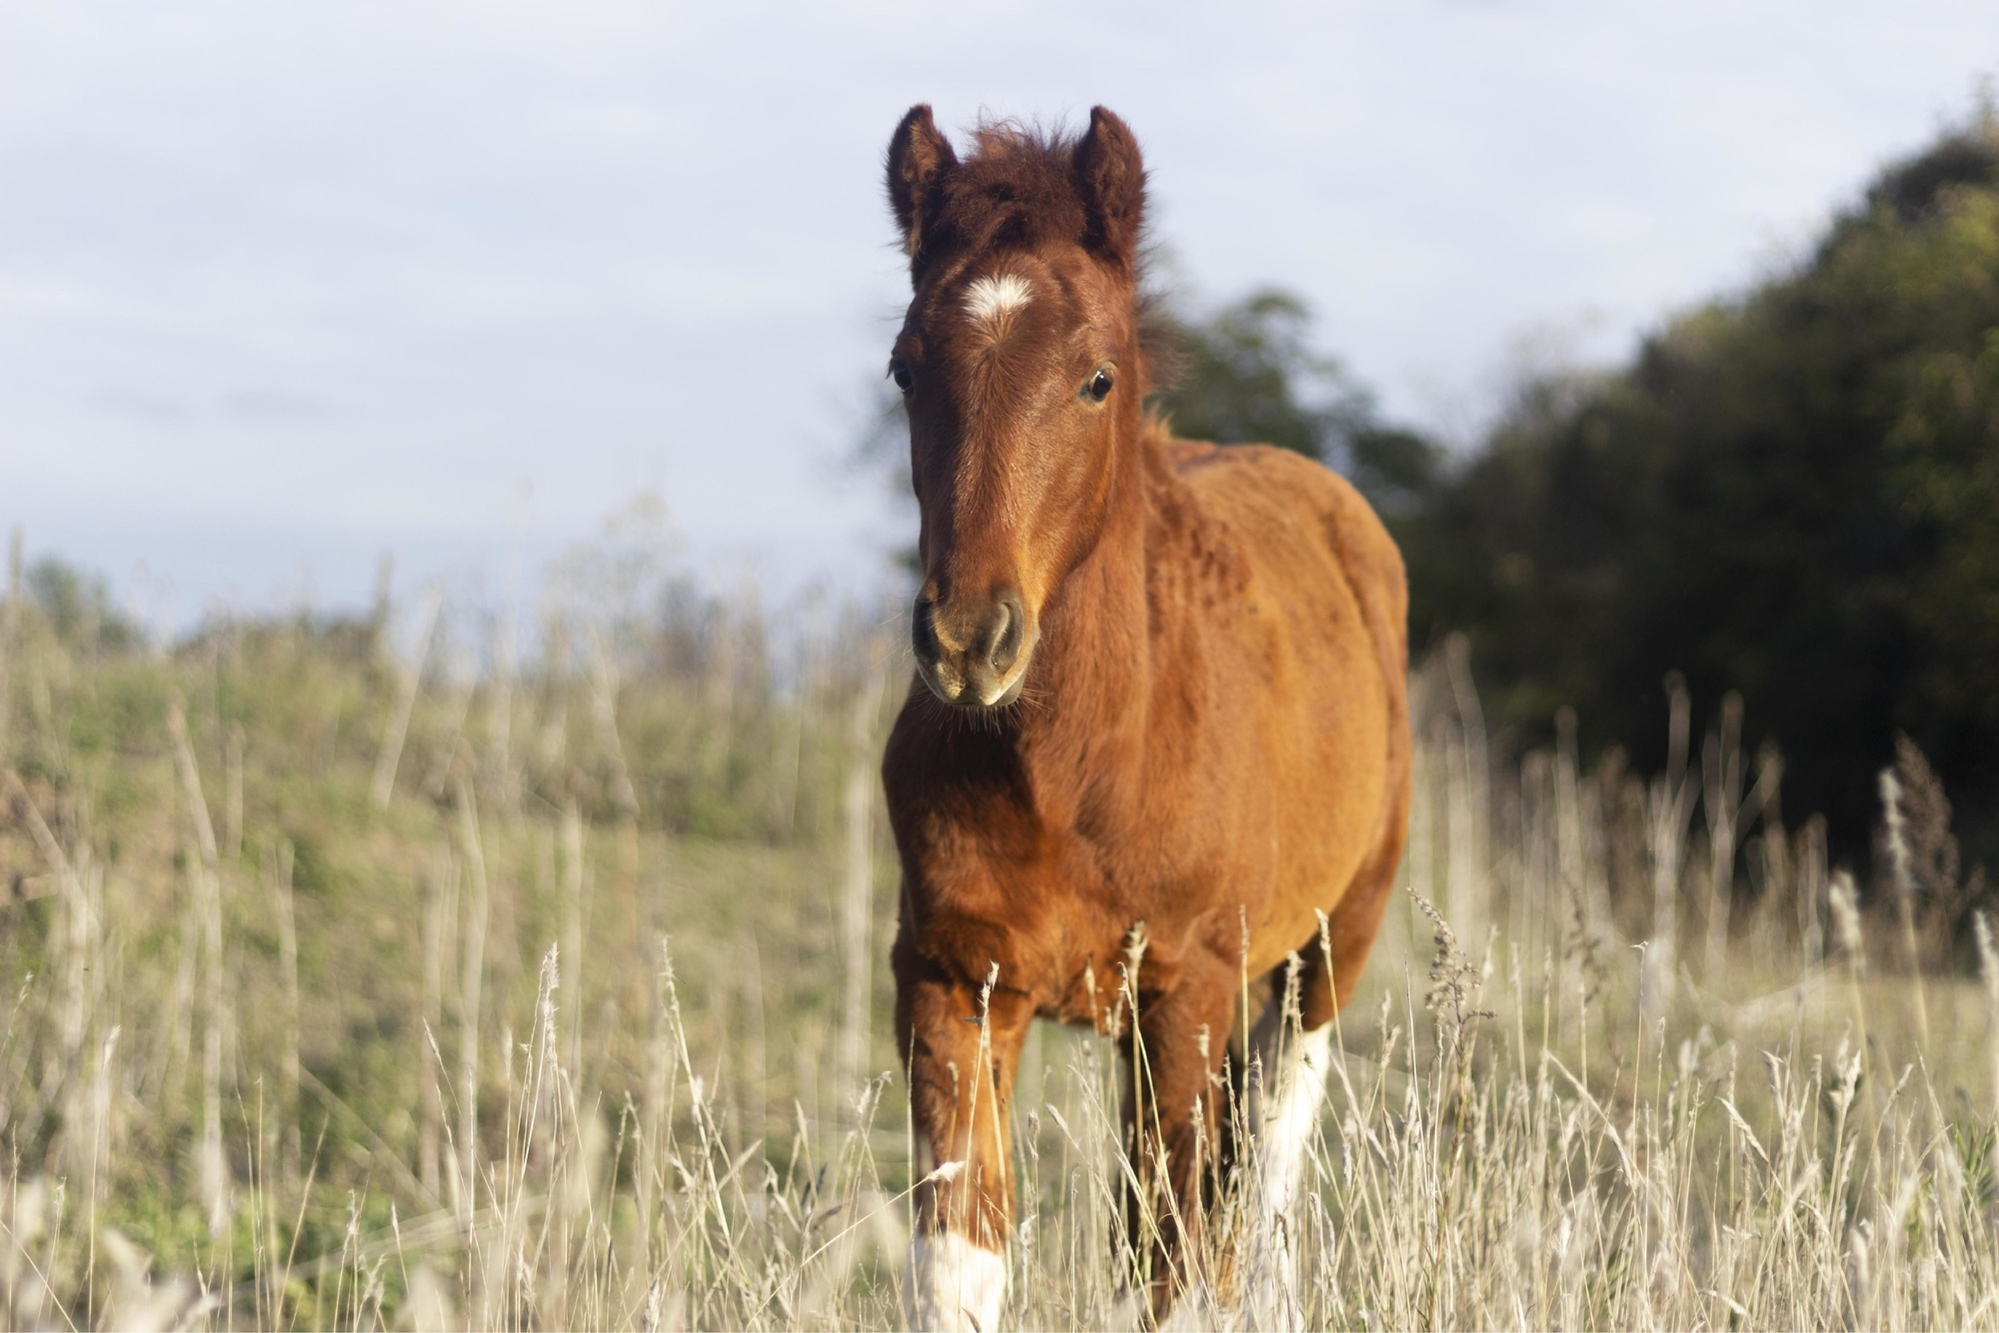 A guide to toxic plants for horses in Colorado